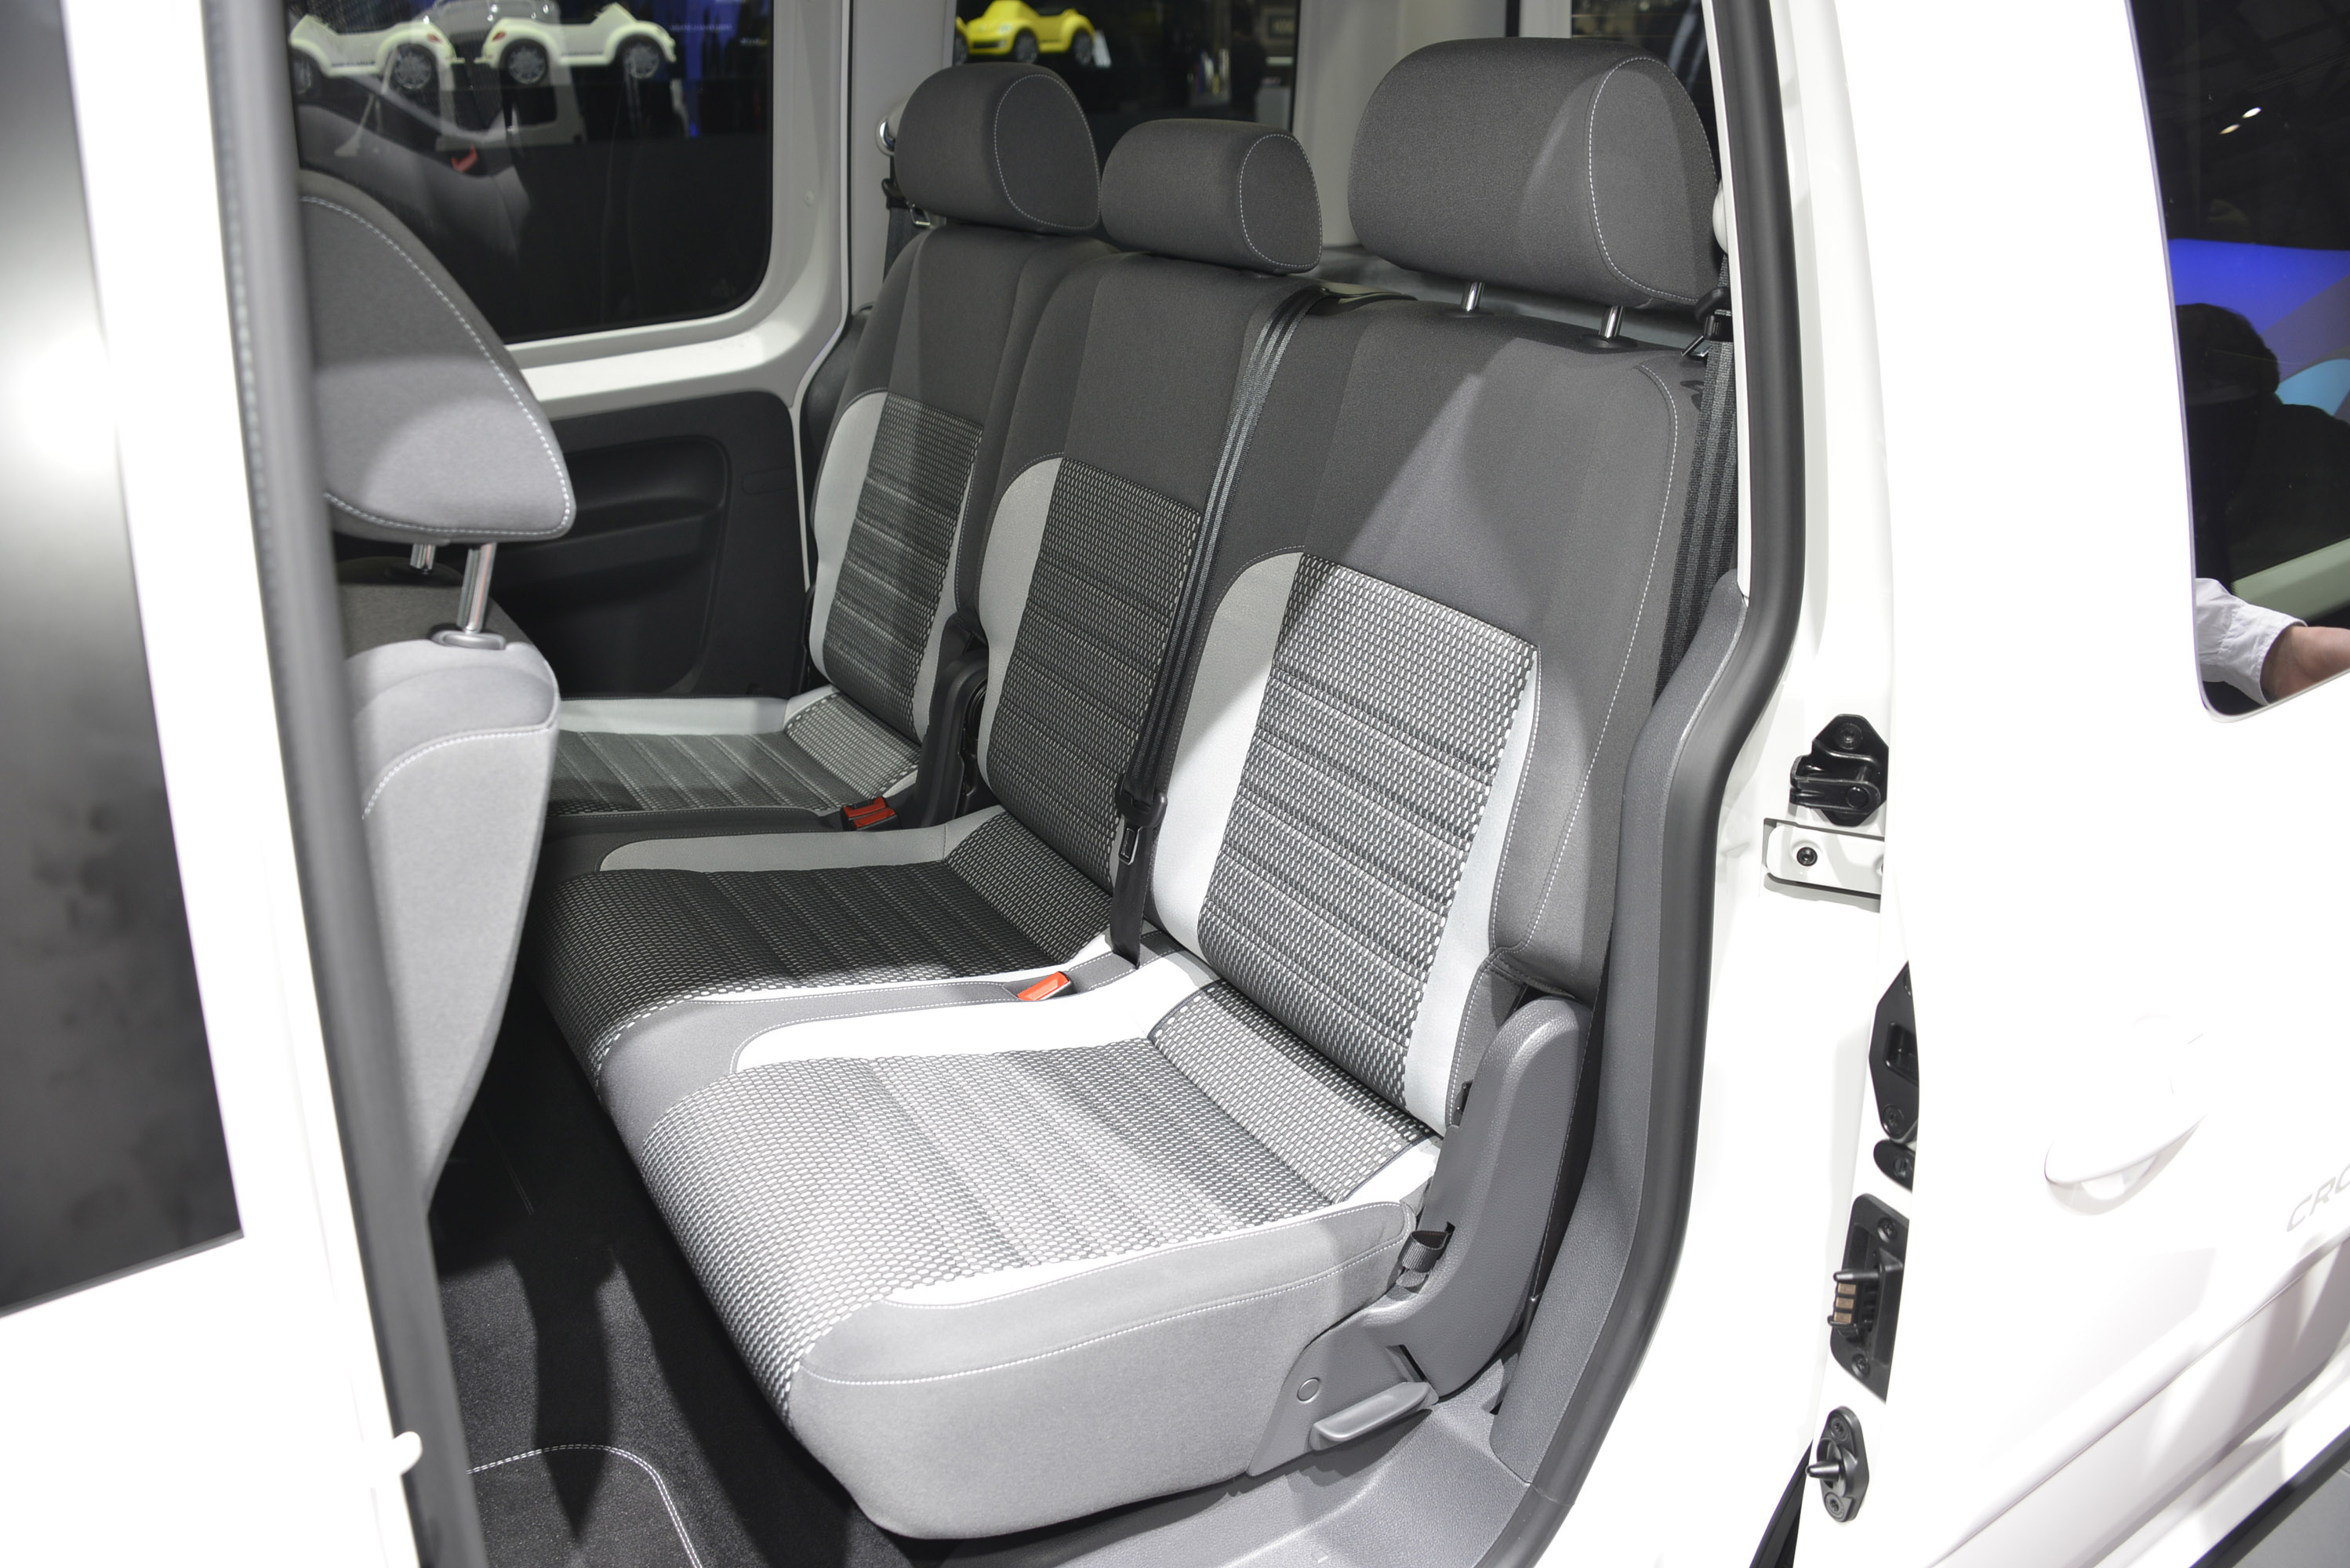 2014 Vw Caddy Cross Review.html | Autos Post